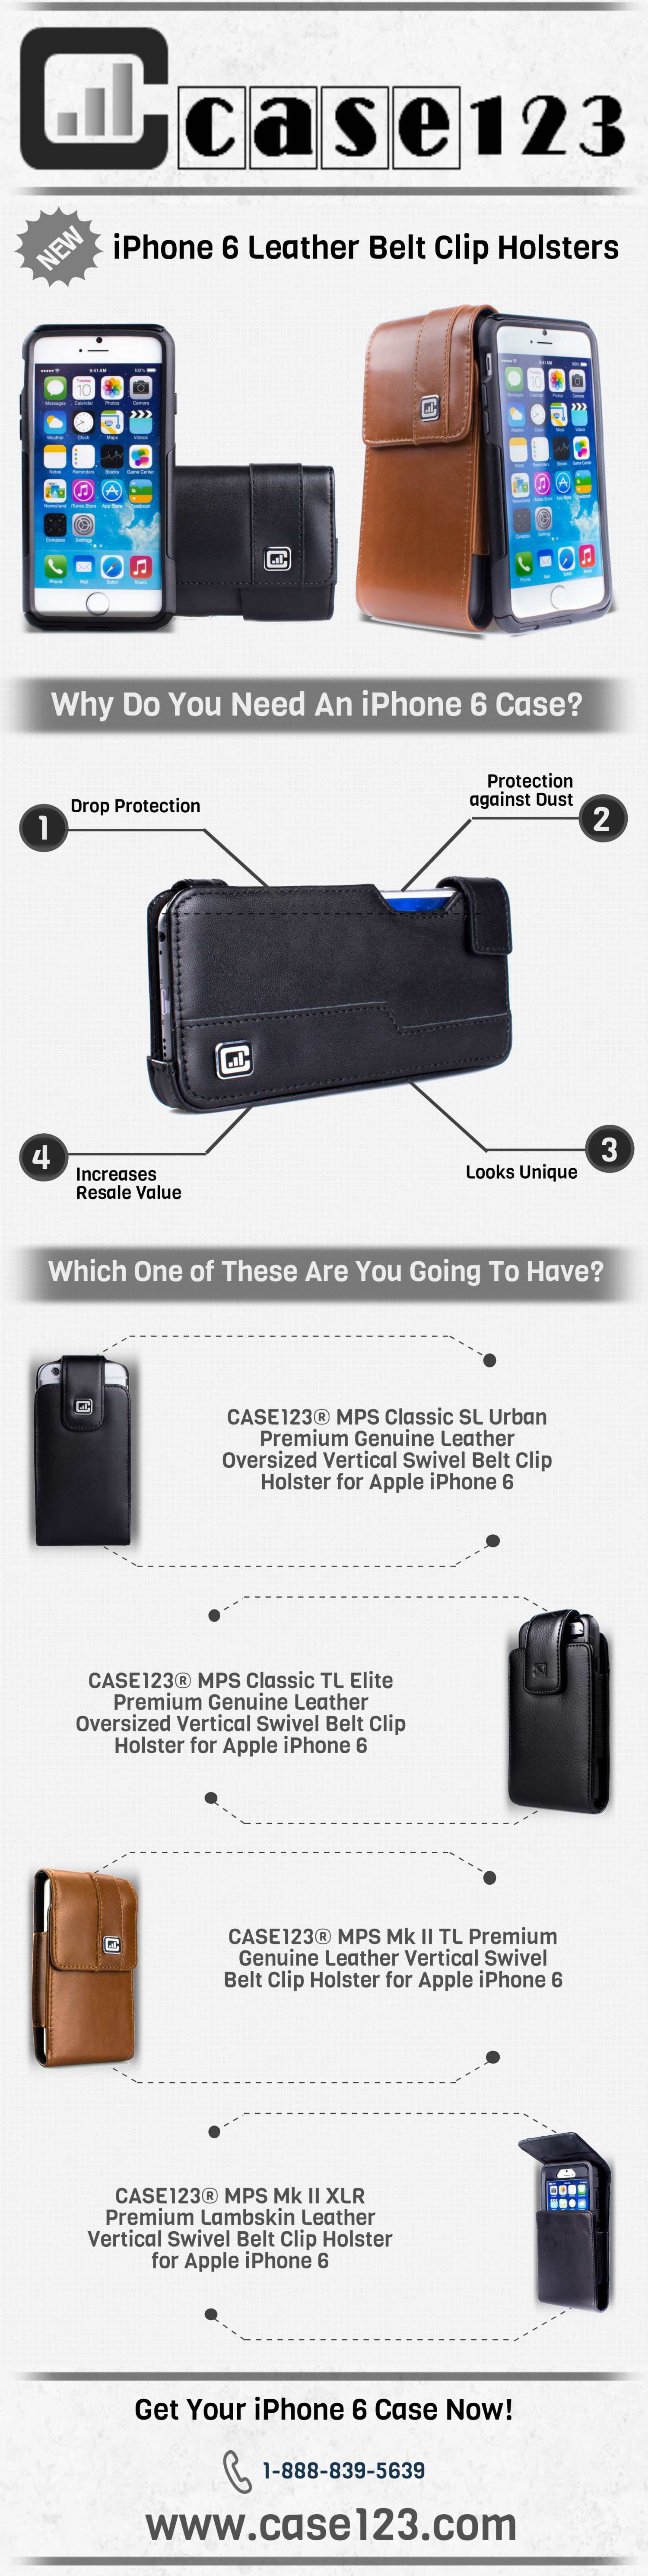 Leather iPhone Holster - CASE123 Infographic